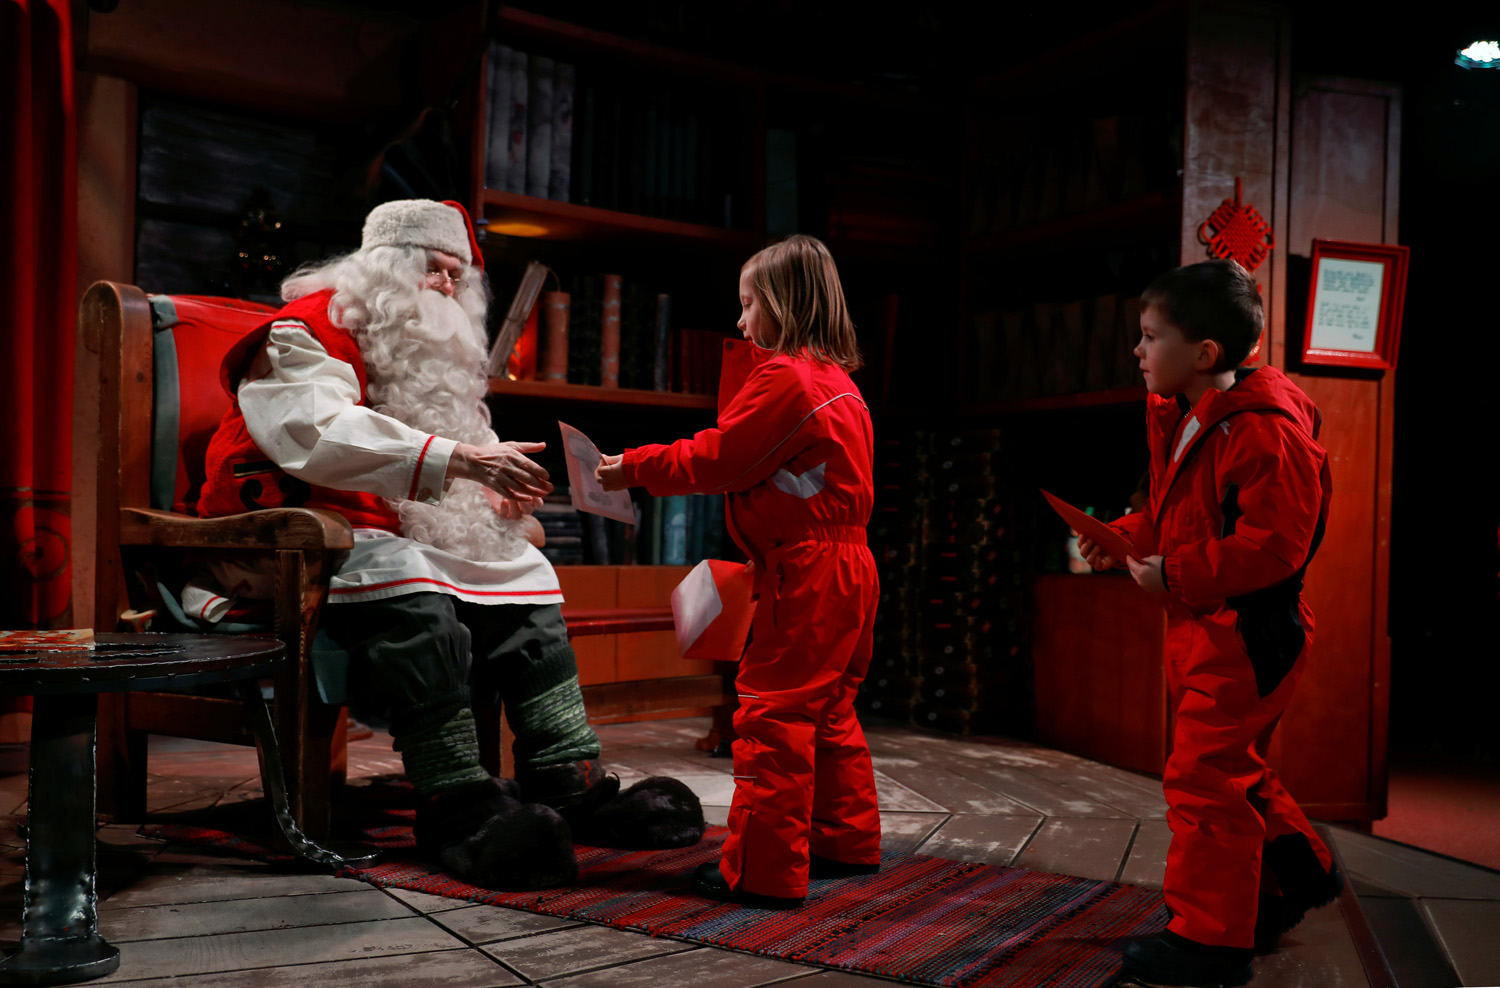 "Santa Claus talks to Eloise and Noah Seymour from England at Santa Claus' Village in the Arctic Circle near Rovaniemi, Finland December 15, 2016. REUTERS/Pawel Kopczynski SEARCH ""KOPCZYNSKI SANTA"" FOR THIS STORY. SEARCH ""THE WIDER IMAGE"" FOR ALL STORIES"